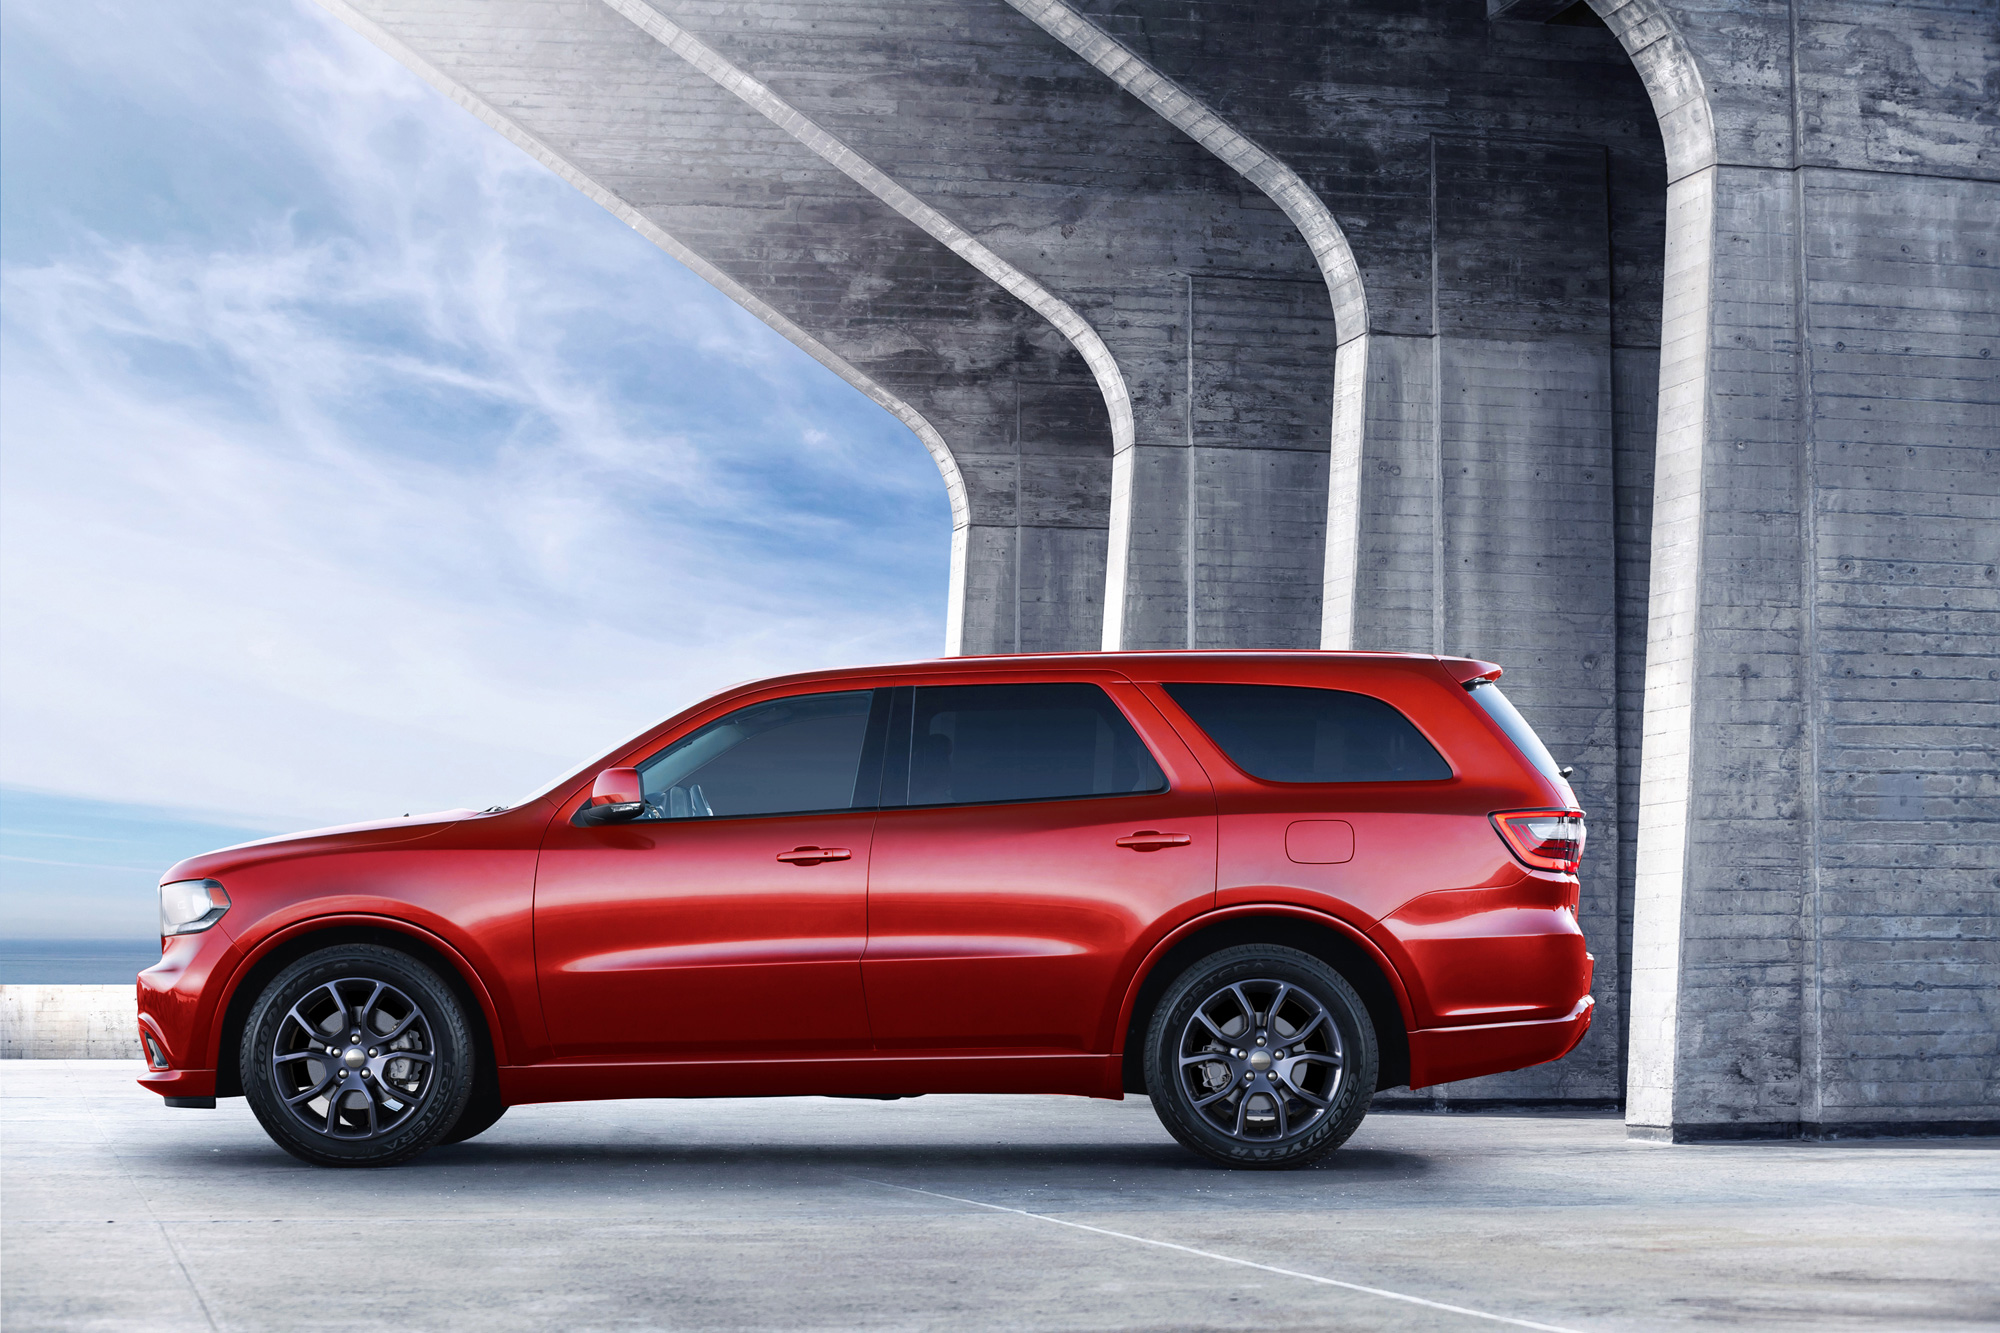 2015 dodge durango r t adds red nappa leather autoguide. Black Bedroom Furniture Sets. Home Design Ideas